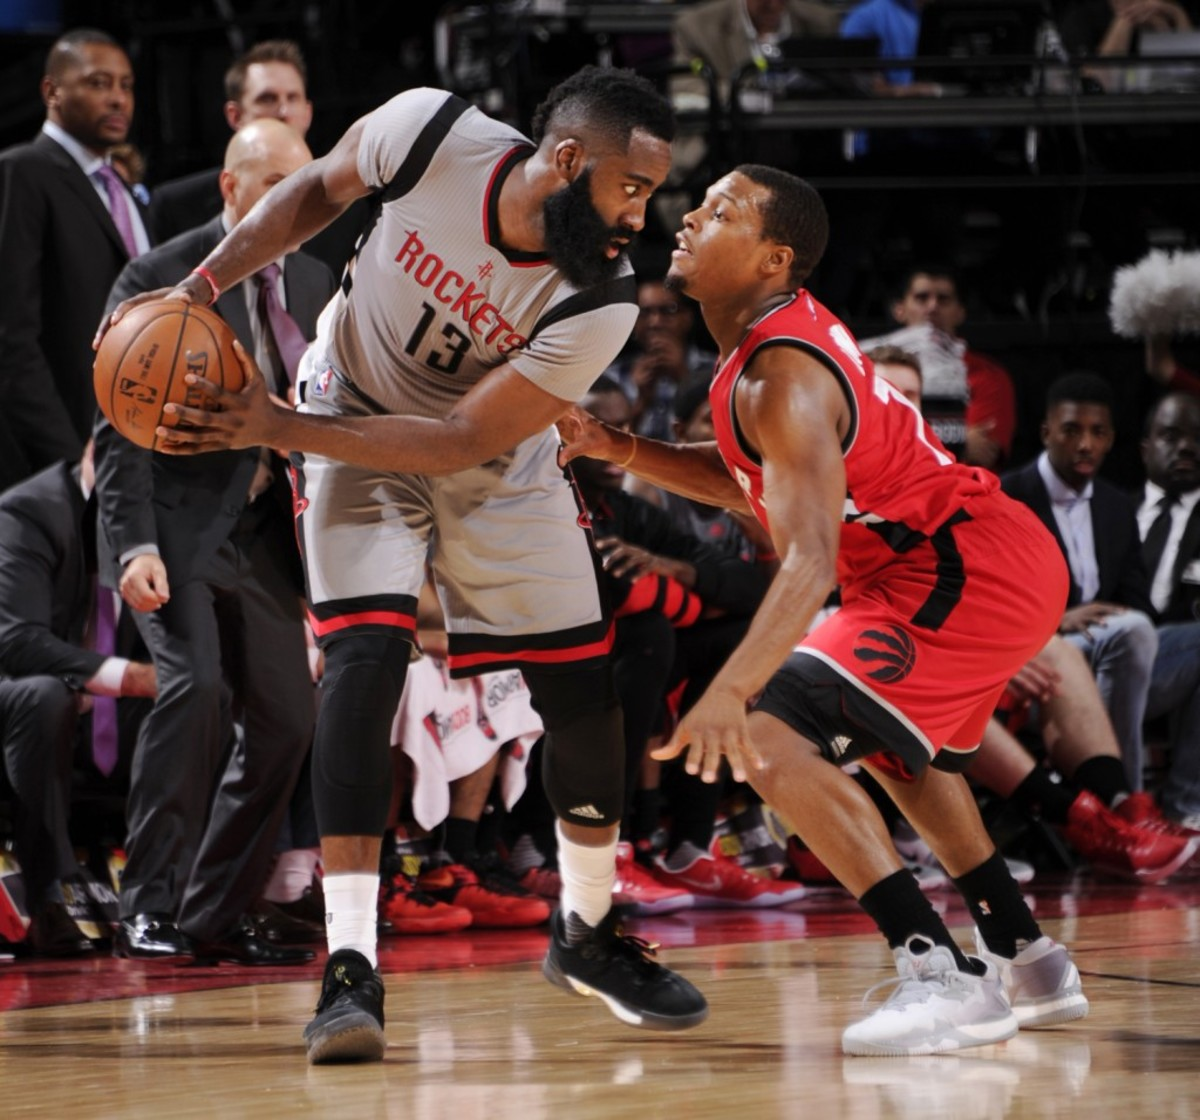 HOUSTON, TX - NOVEMBER 23:  James Harden #13 of the Houston Rockets handles the ball against Kyle Lowry #7 of the Toronto Raptors during a game on November 23, 2016 at the Toyota Center in Houston, Texas. NOTE TO USER: User expressly acknowledges and agrees that, by downloading and or using this photograph, user is consenting to the terms and conditions of the Getty Images License Agreement. Mandatory Copyright Notice: Copyright 2016 NBAE (Photo by Bill Baptist/NBAE via Getty Images)